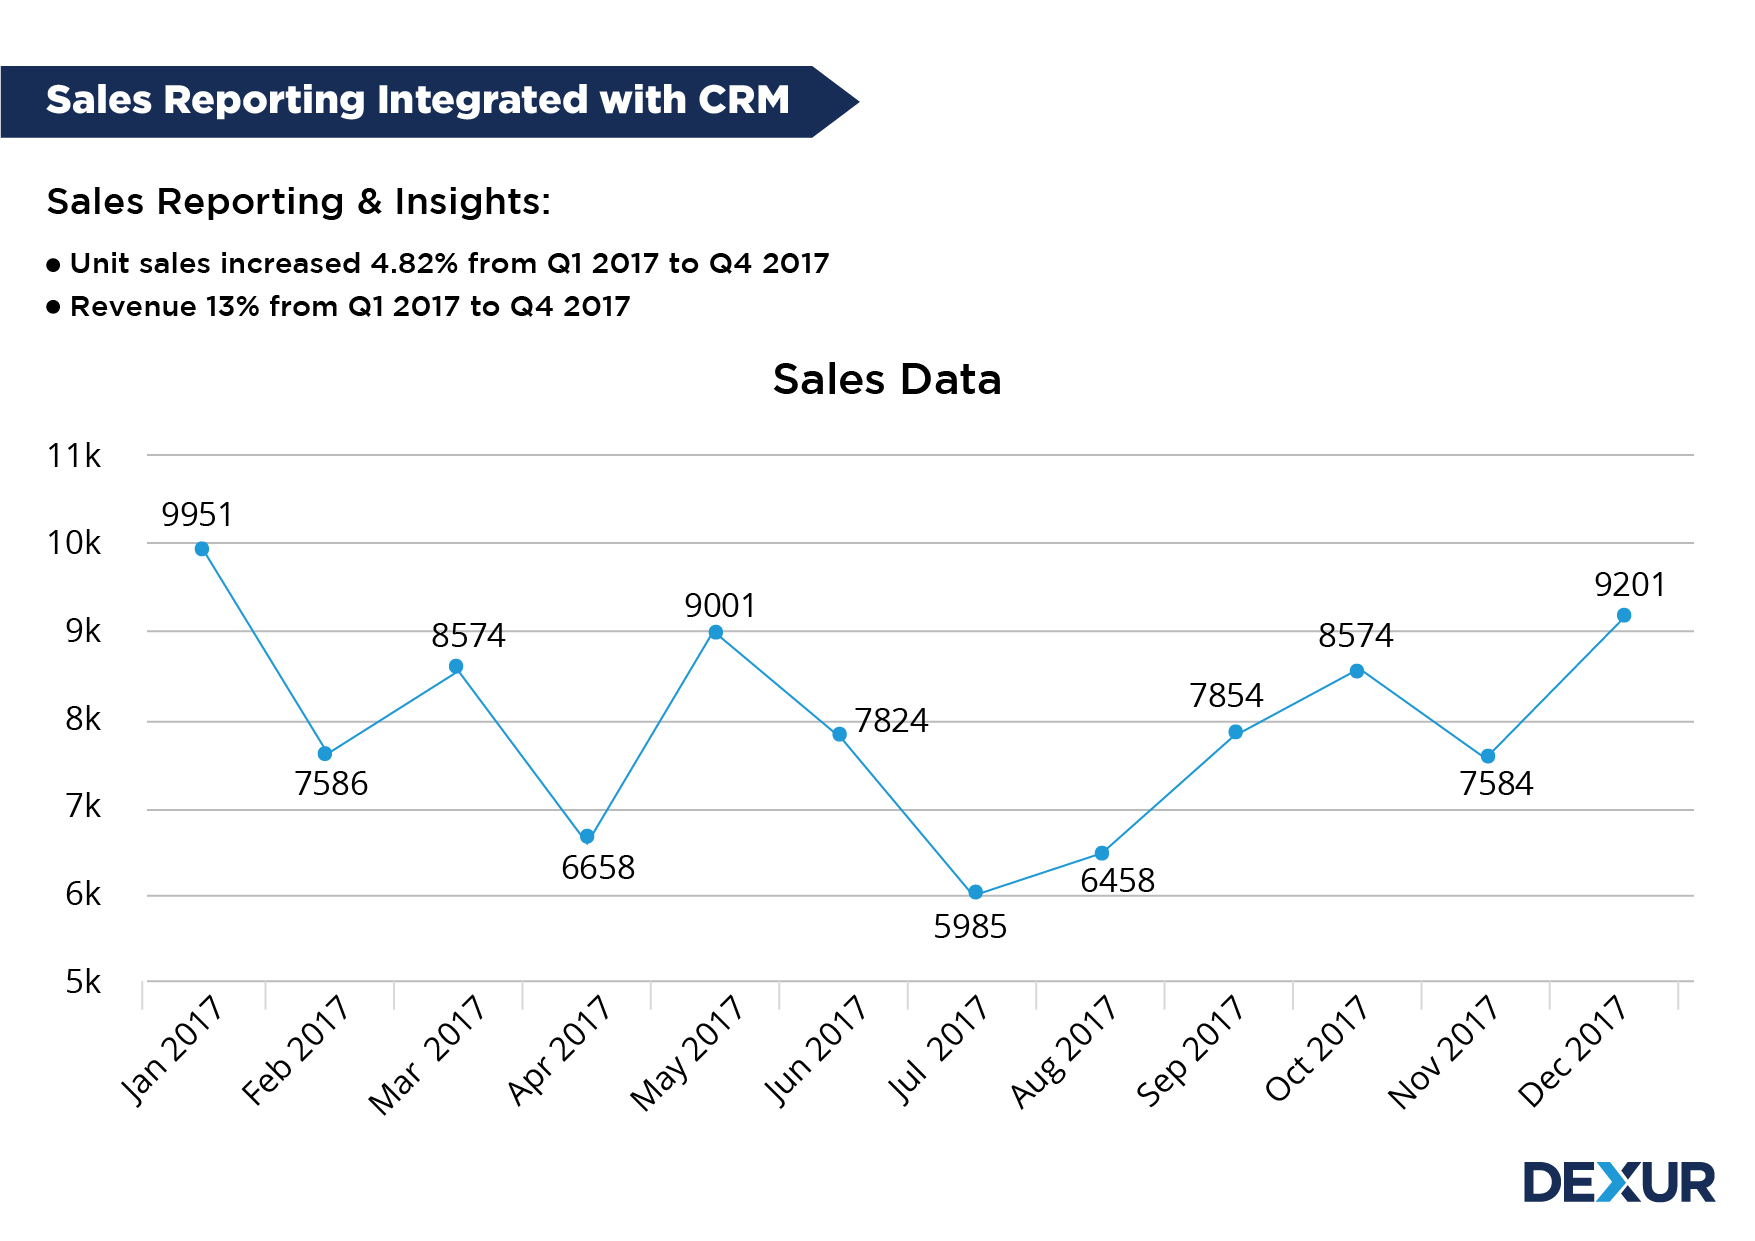 Sales Reporting Integrated With CRM